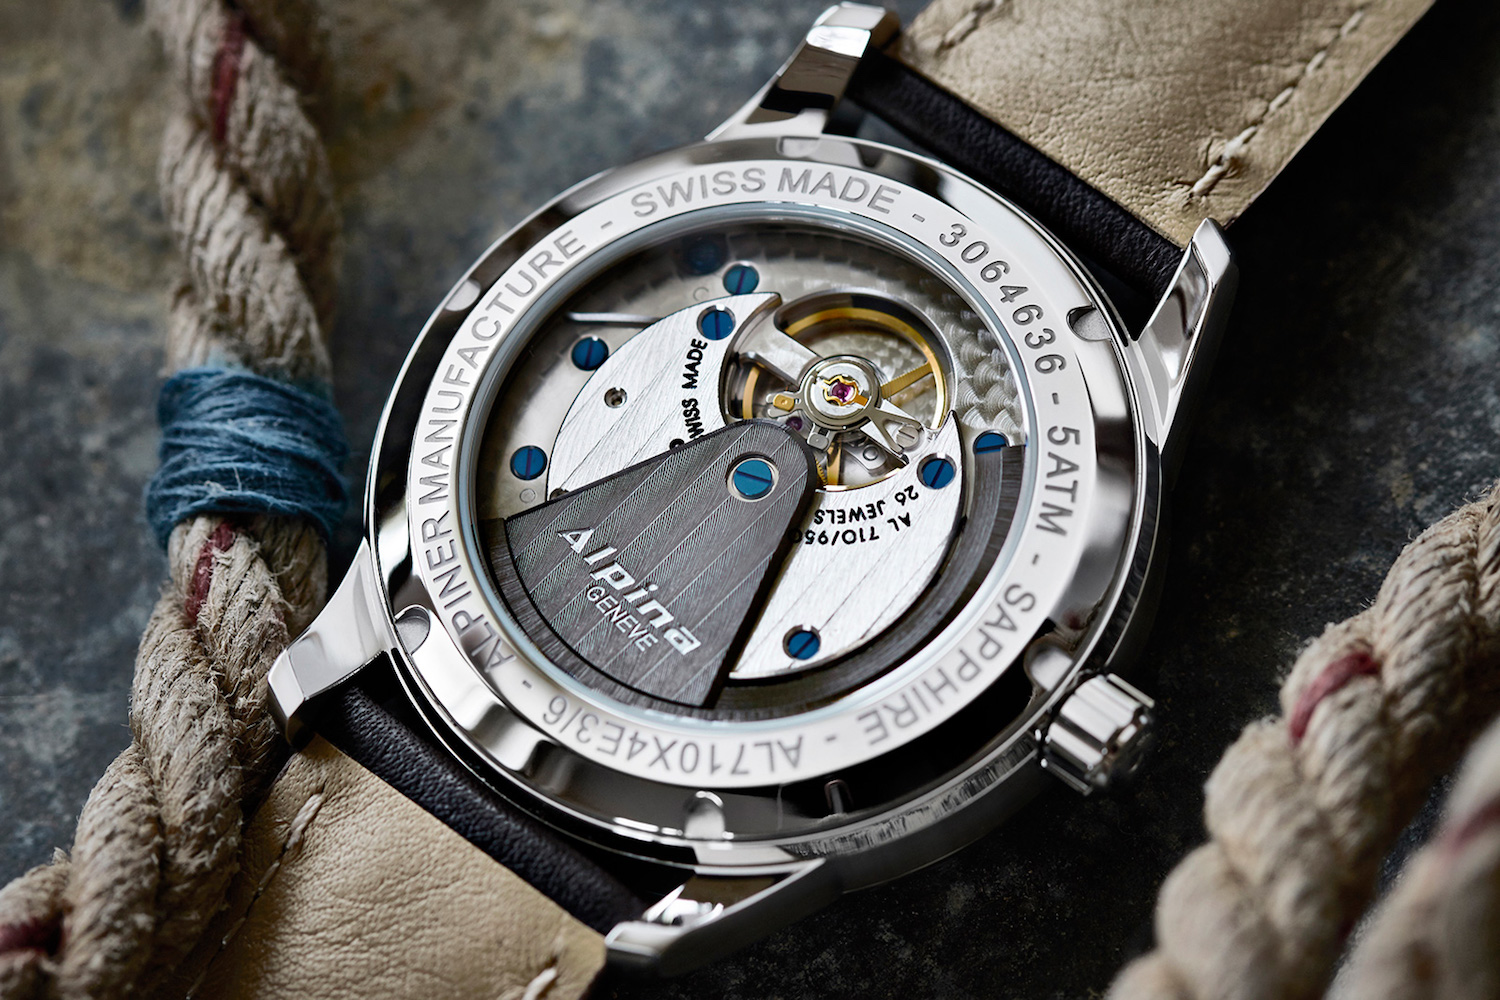 Alpina-KM-710-Military-WWII-inspired-Ger